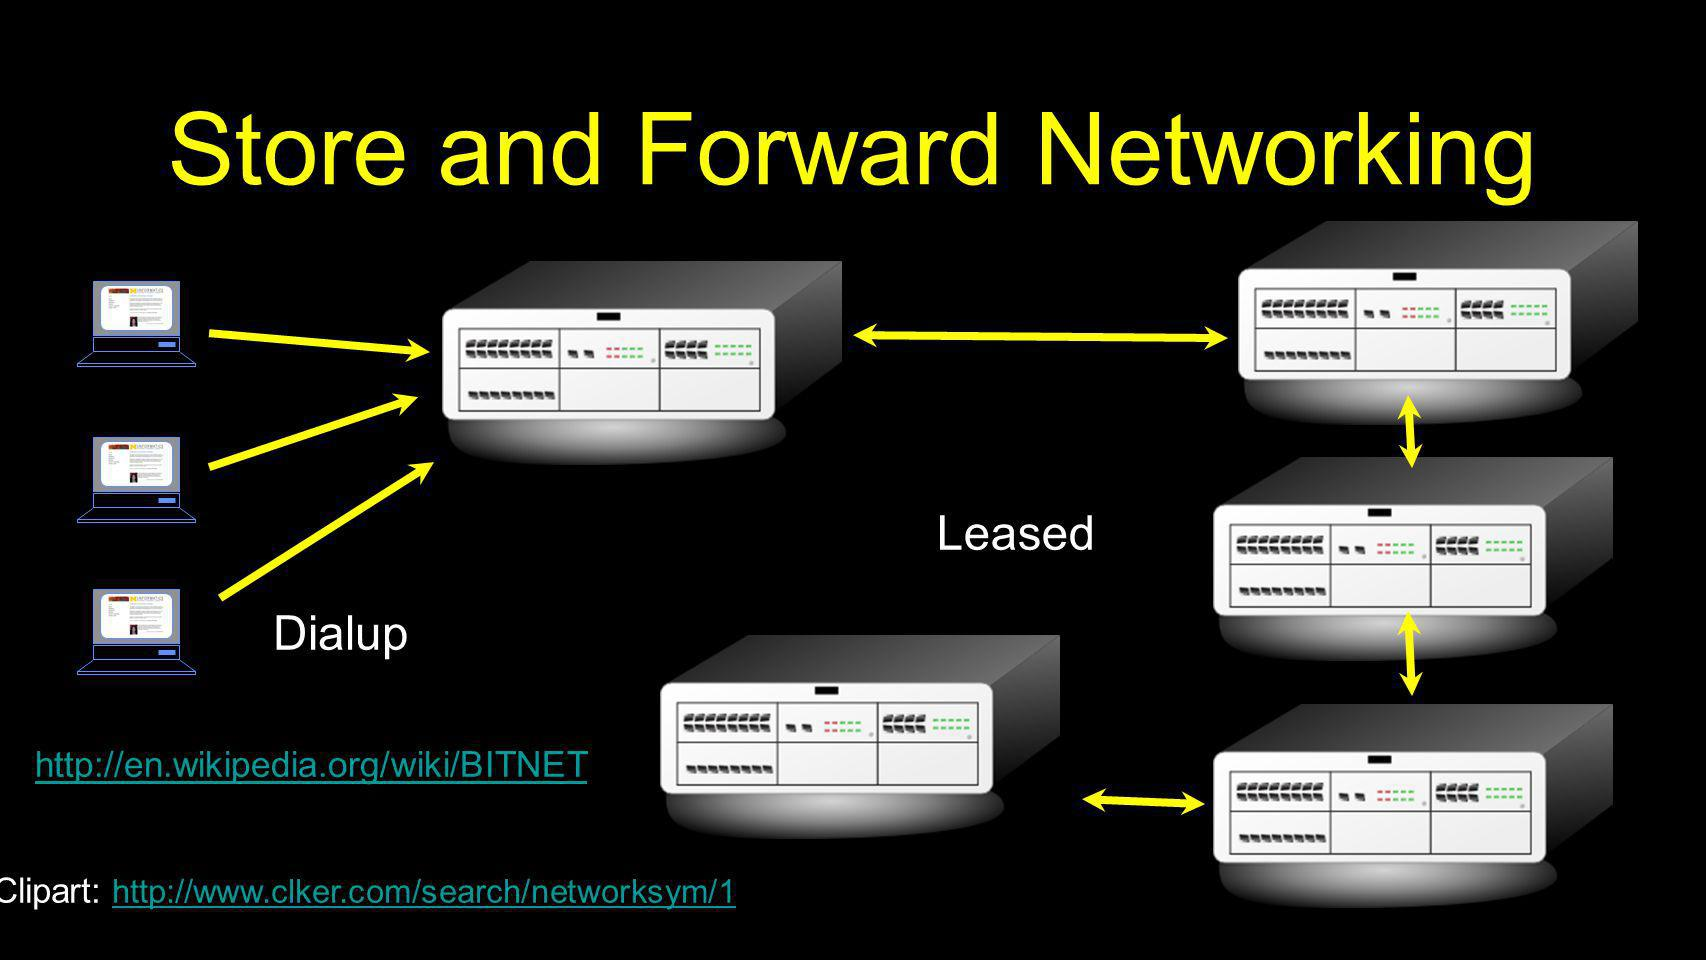 Store and Forward Networking Dialup Leased http://en.wikipedia.org/wiki/BITNET Clipart: http://www.clker.com/search/networksym/1 http://www.clker.com/